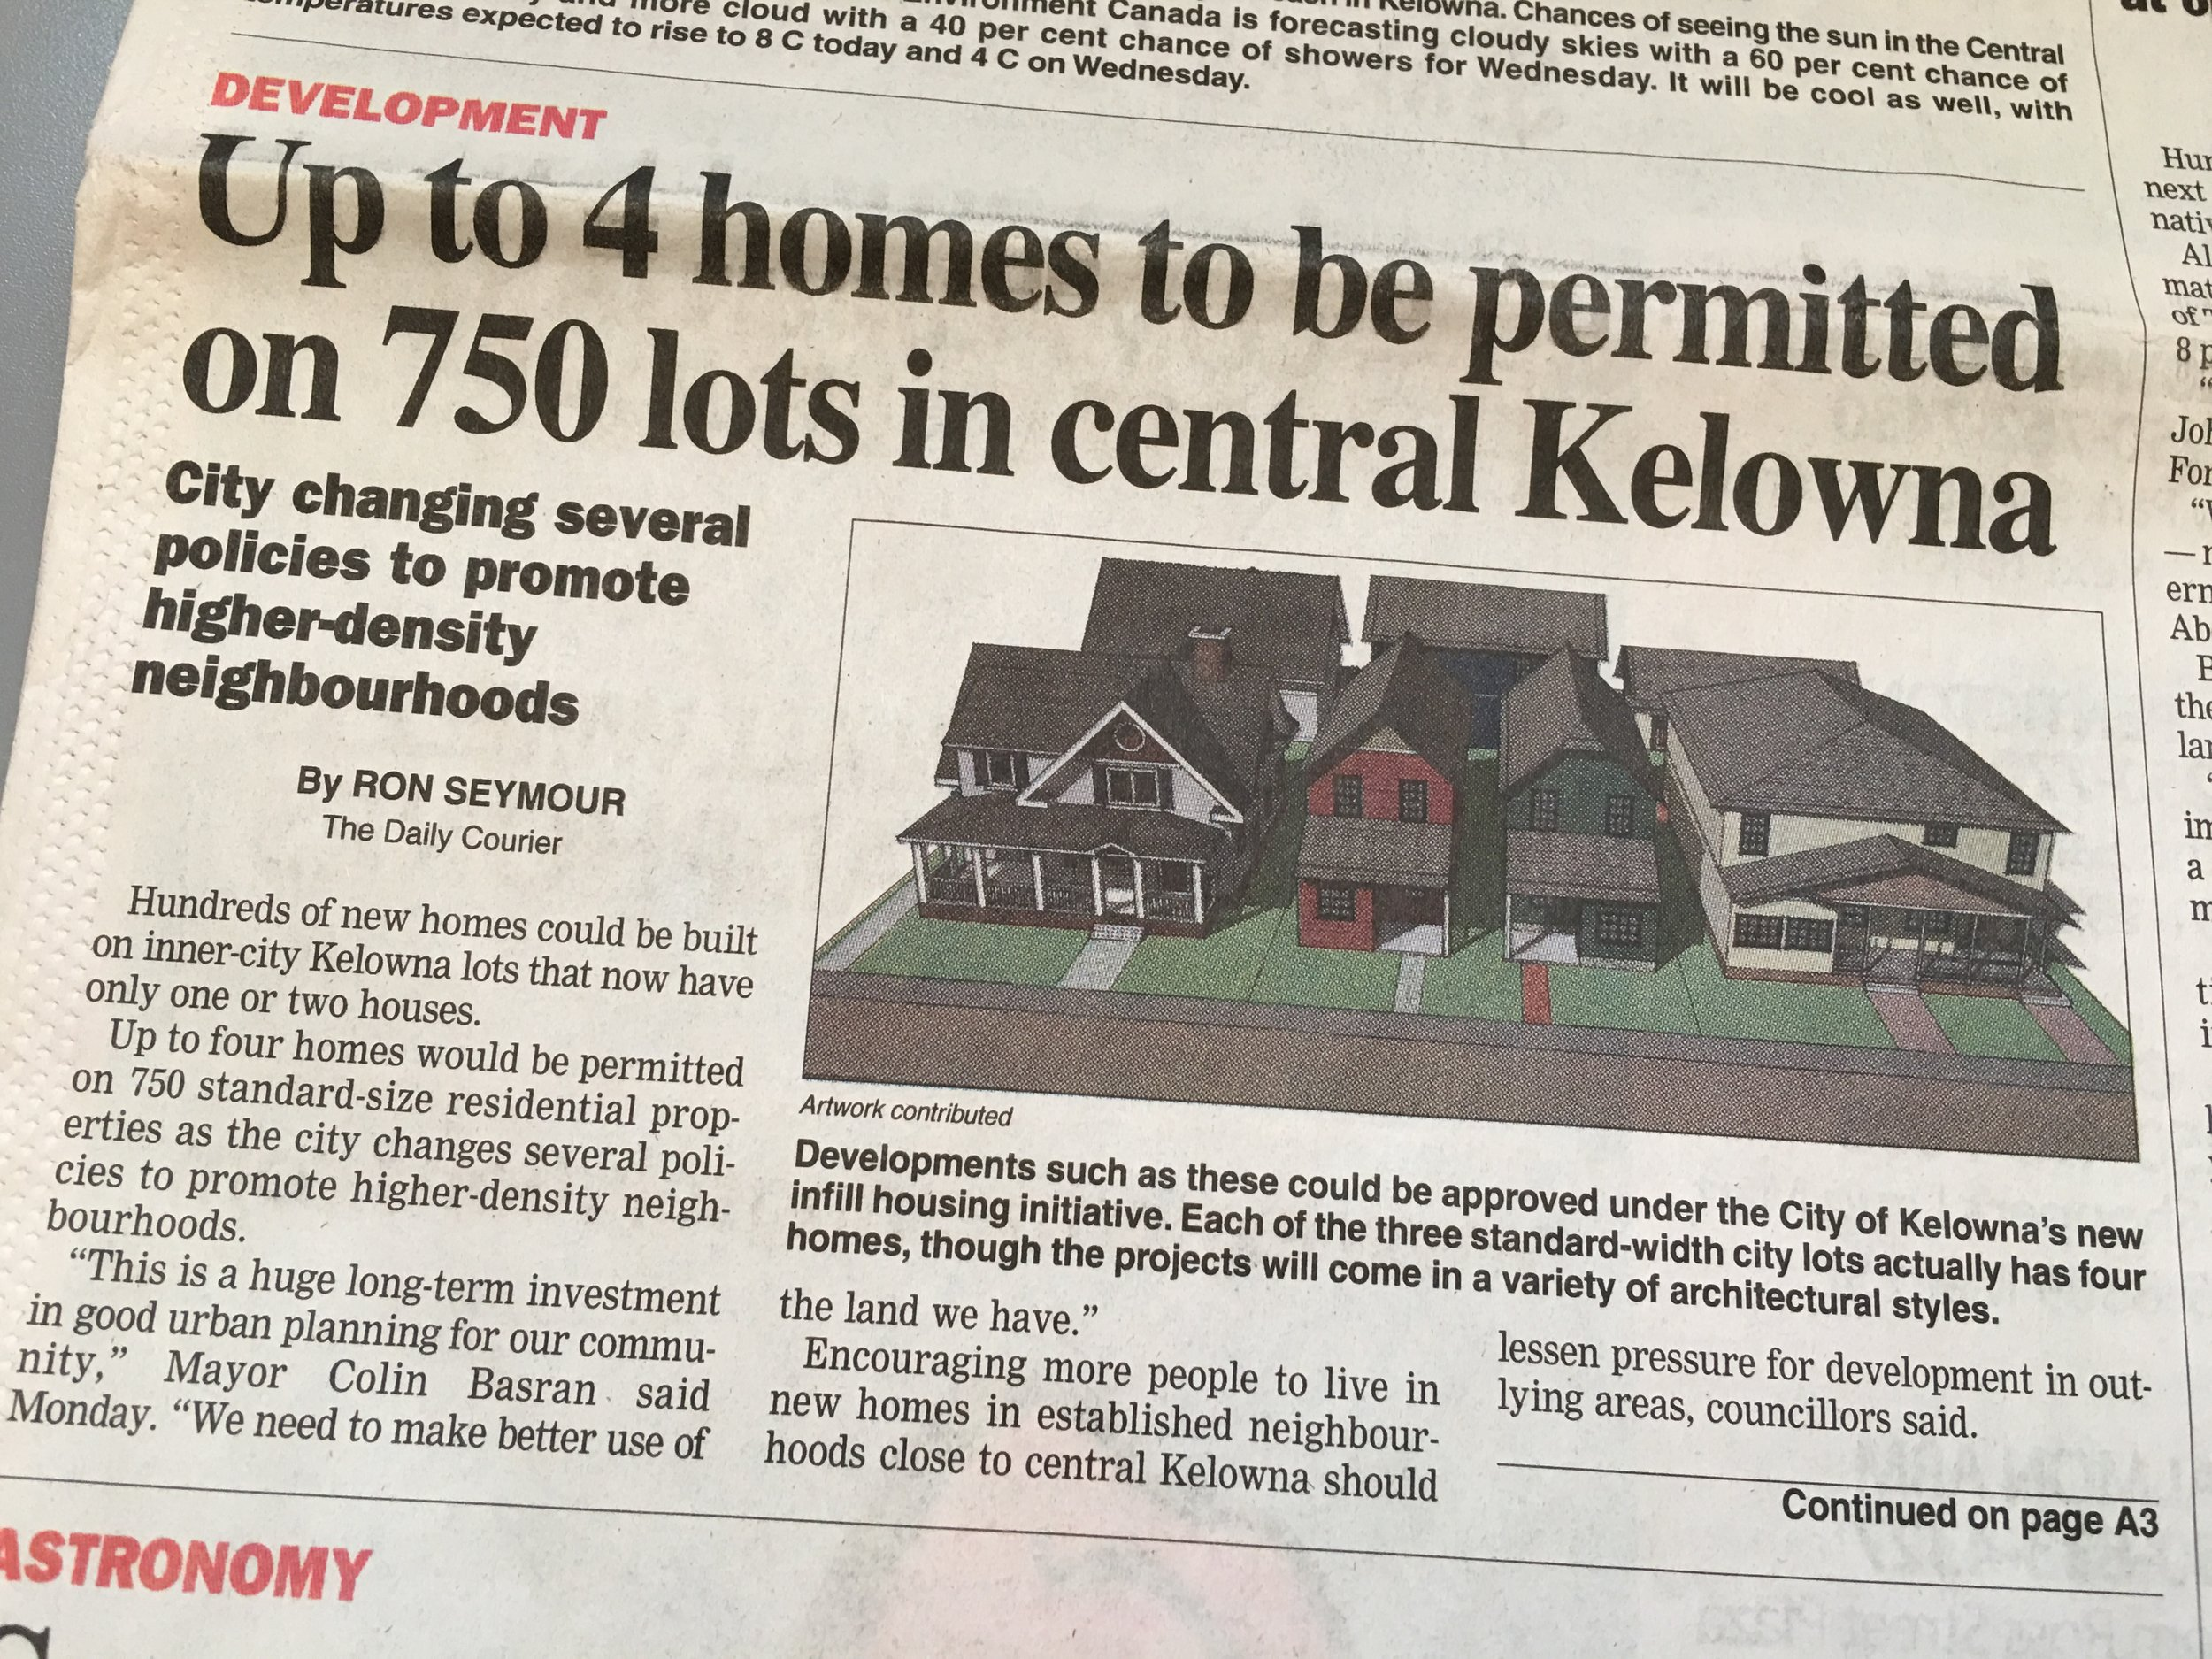 Kelowna Daily Courier - Up to 4 homes to be permitted on 750 lots in central Kelowna